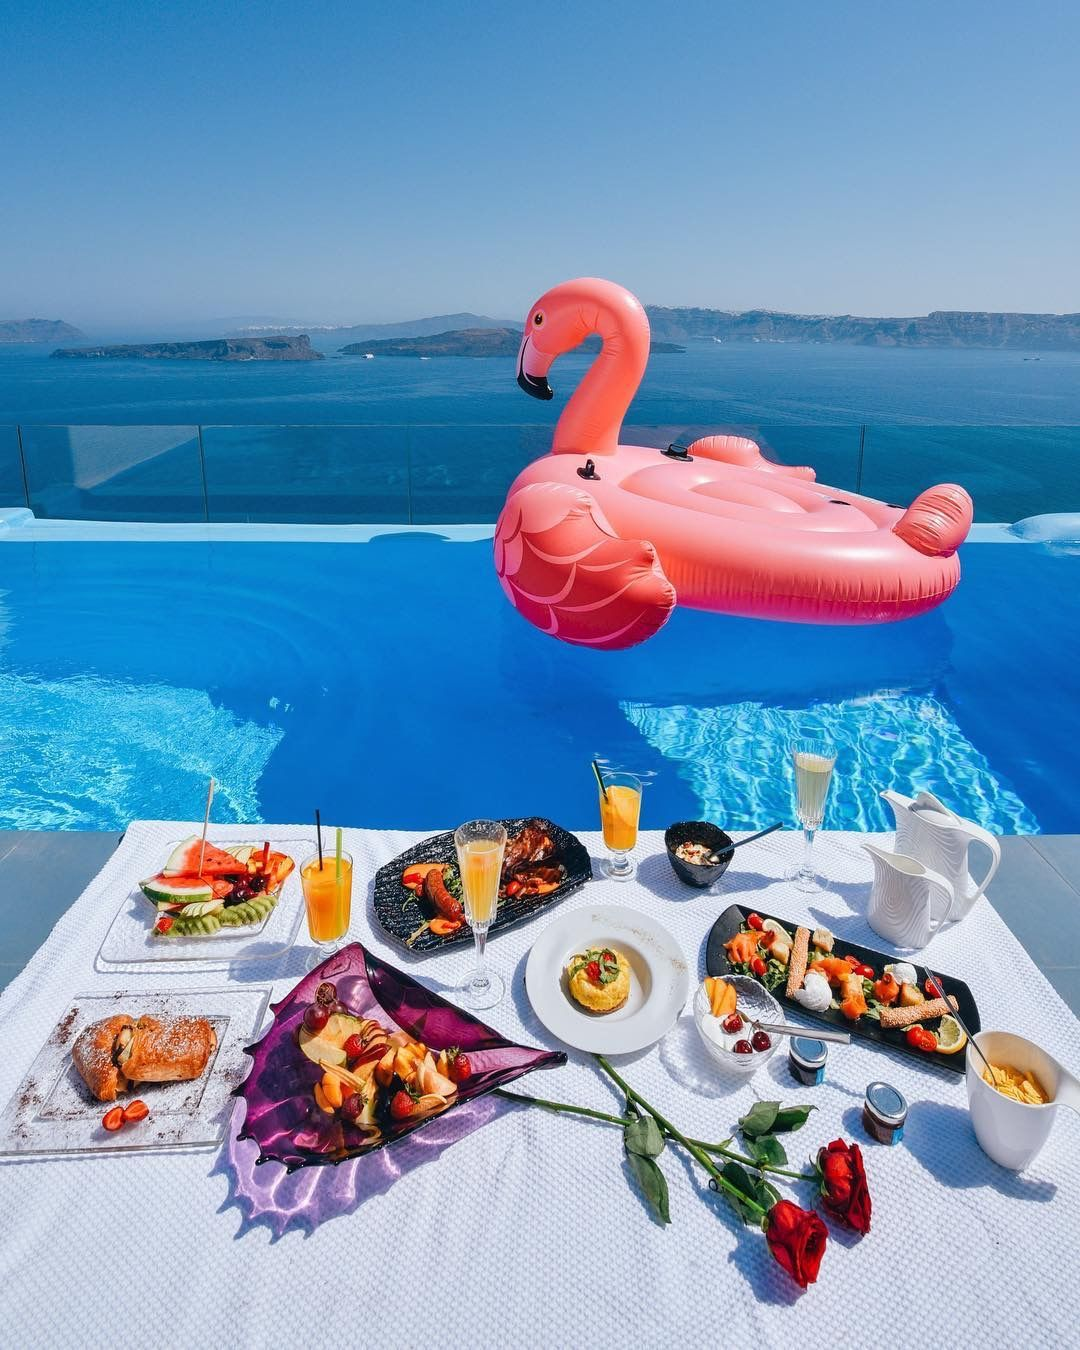 Breakfast_poolside_in_Santorini_island_-_Astarte_Suites_Luxury_Hotel_flamingo